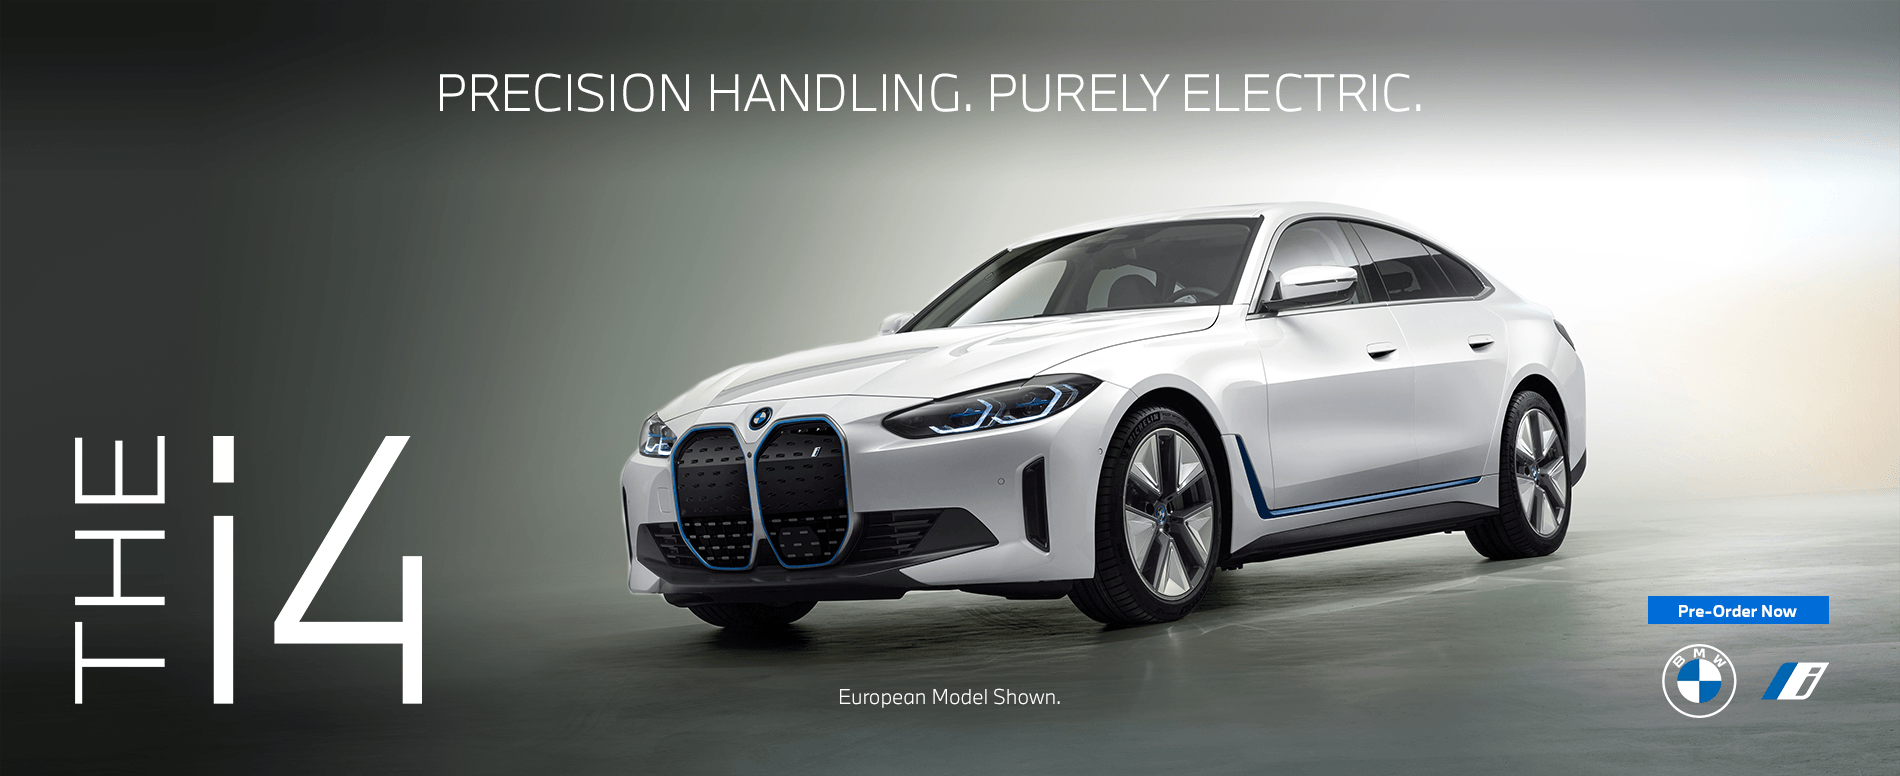 THE I4 PRECISION HANDLING. PURELY ELECTRIC. PRE ORDER NOW